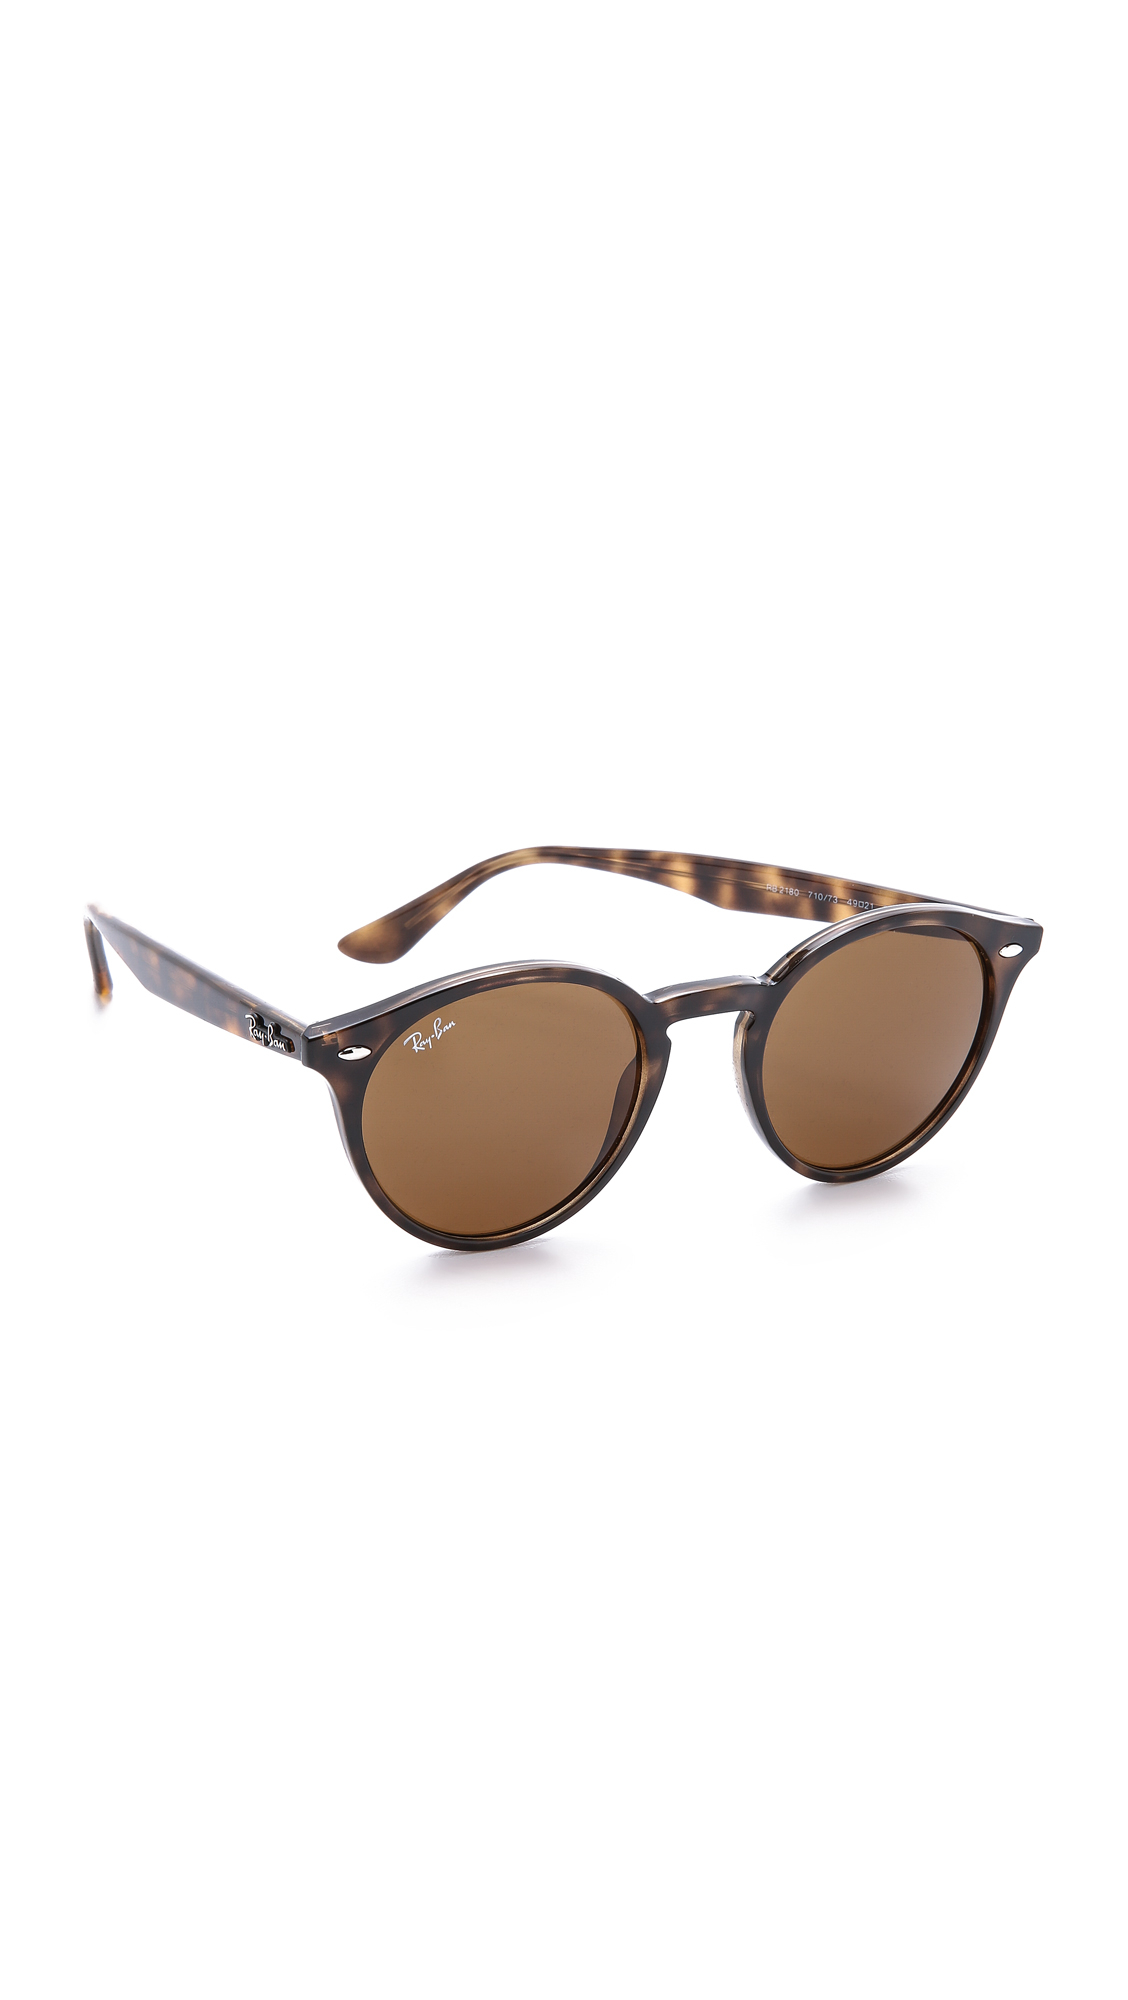 Ray-Ban Highstreet Round Sunglasses - Havana Darkbrown -3528